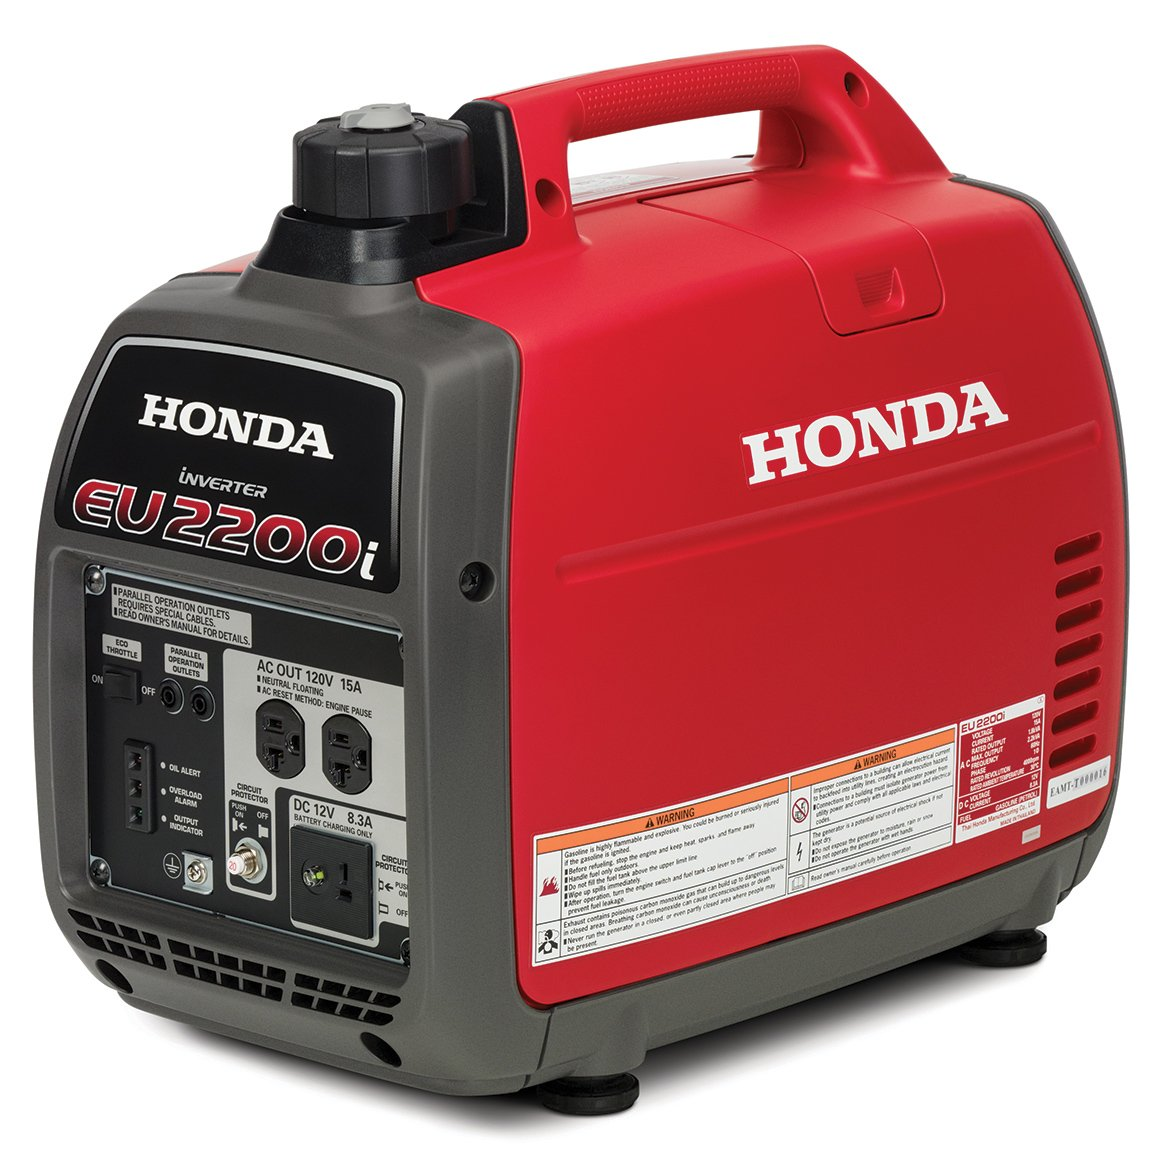 Honda Eu2000 Generator Wire Diagram Wiring Library Inverter Amazoncom Eu2200i 2200 Watt 120 Volt Super Quiet Portable